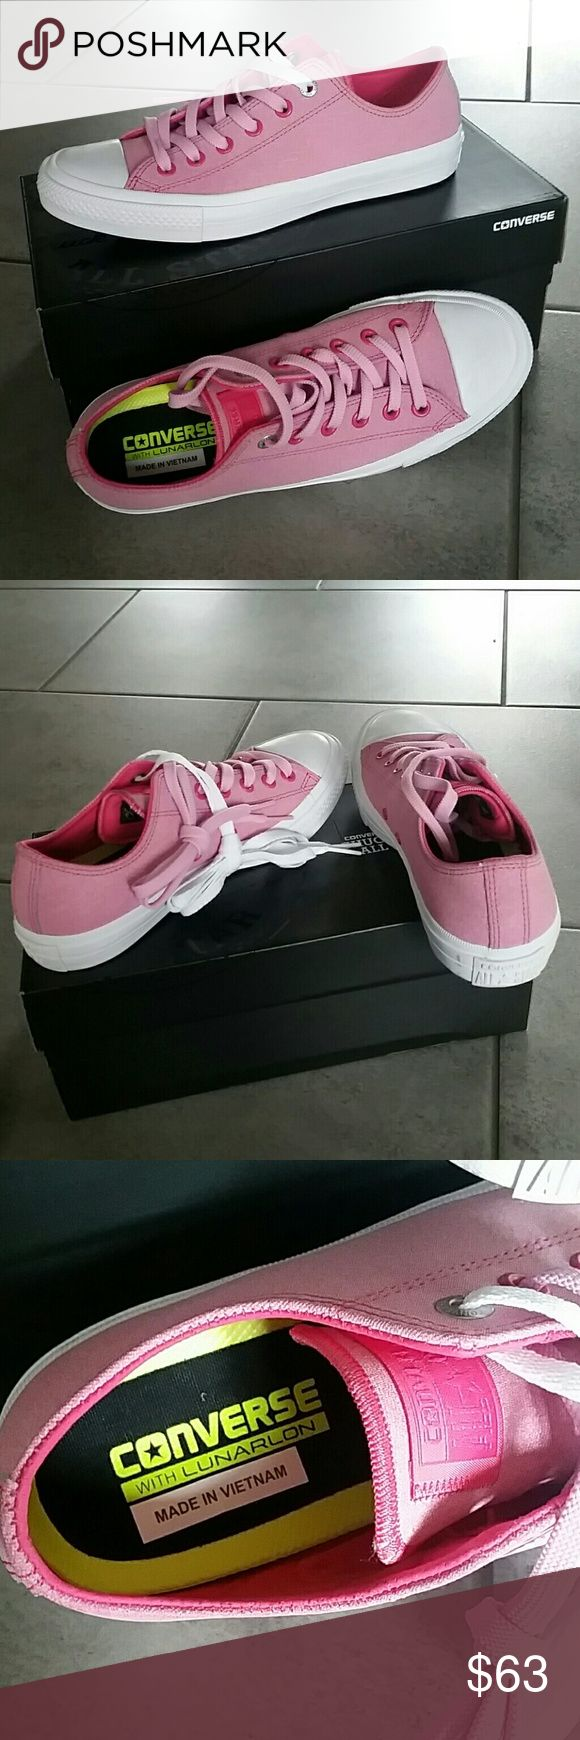 Converse Chuck Taylor All Star II Sneakers Size 9 Fun pink color that is perfect for spring!! Comes with 2 sets of laces-white and pink. Converse Shoes Sneakers